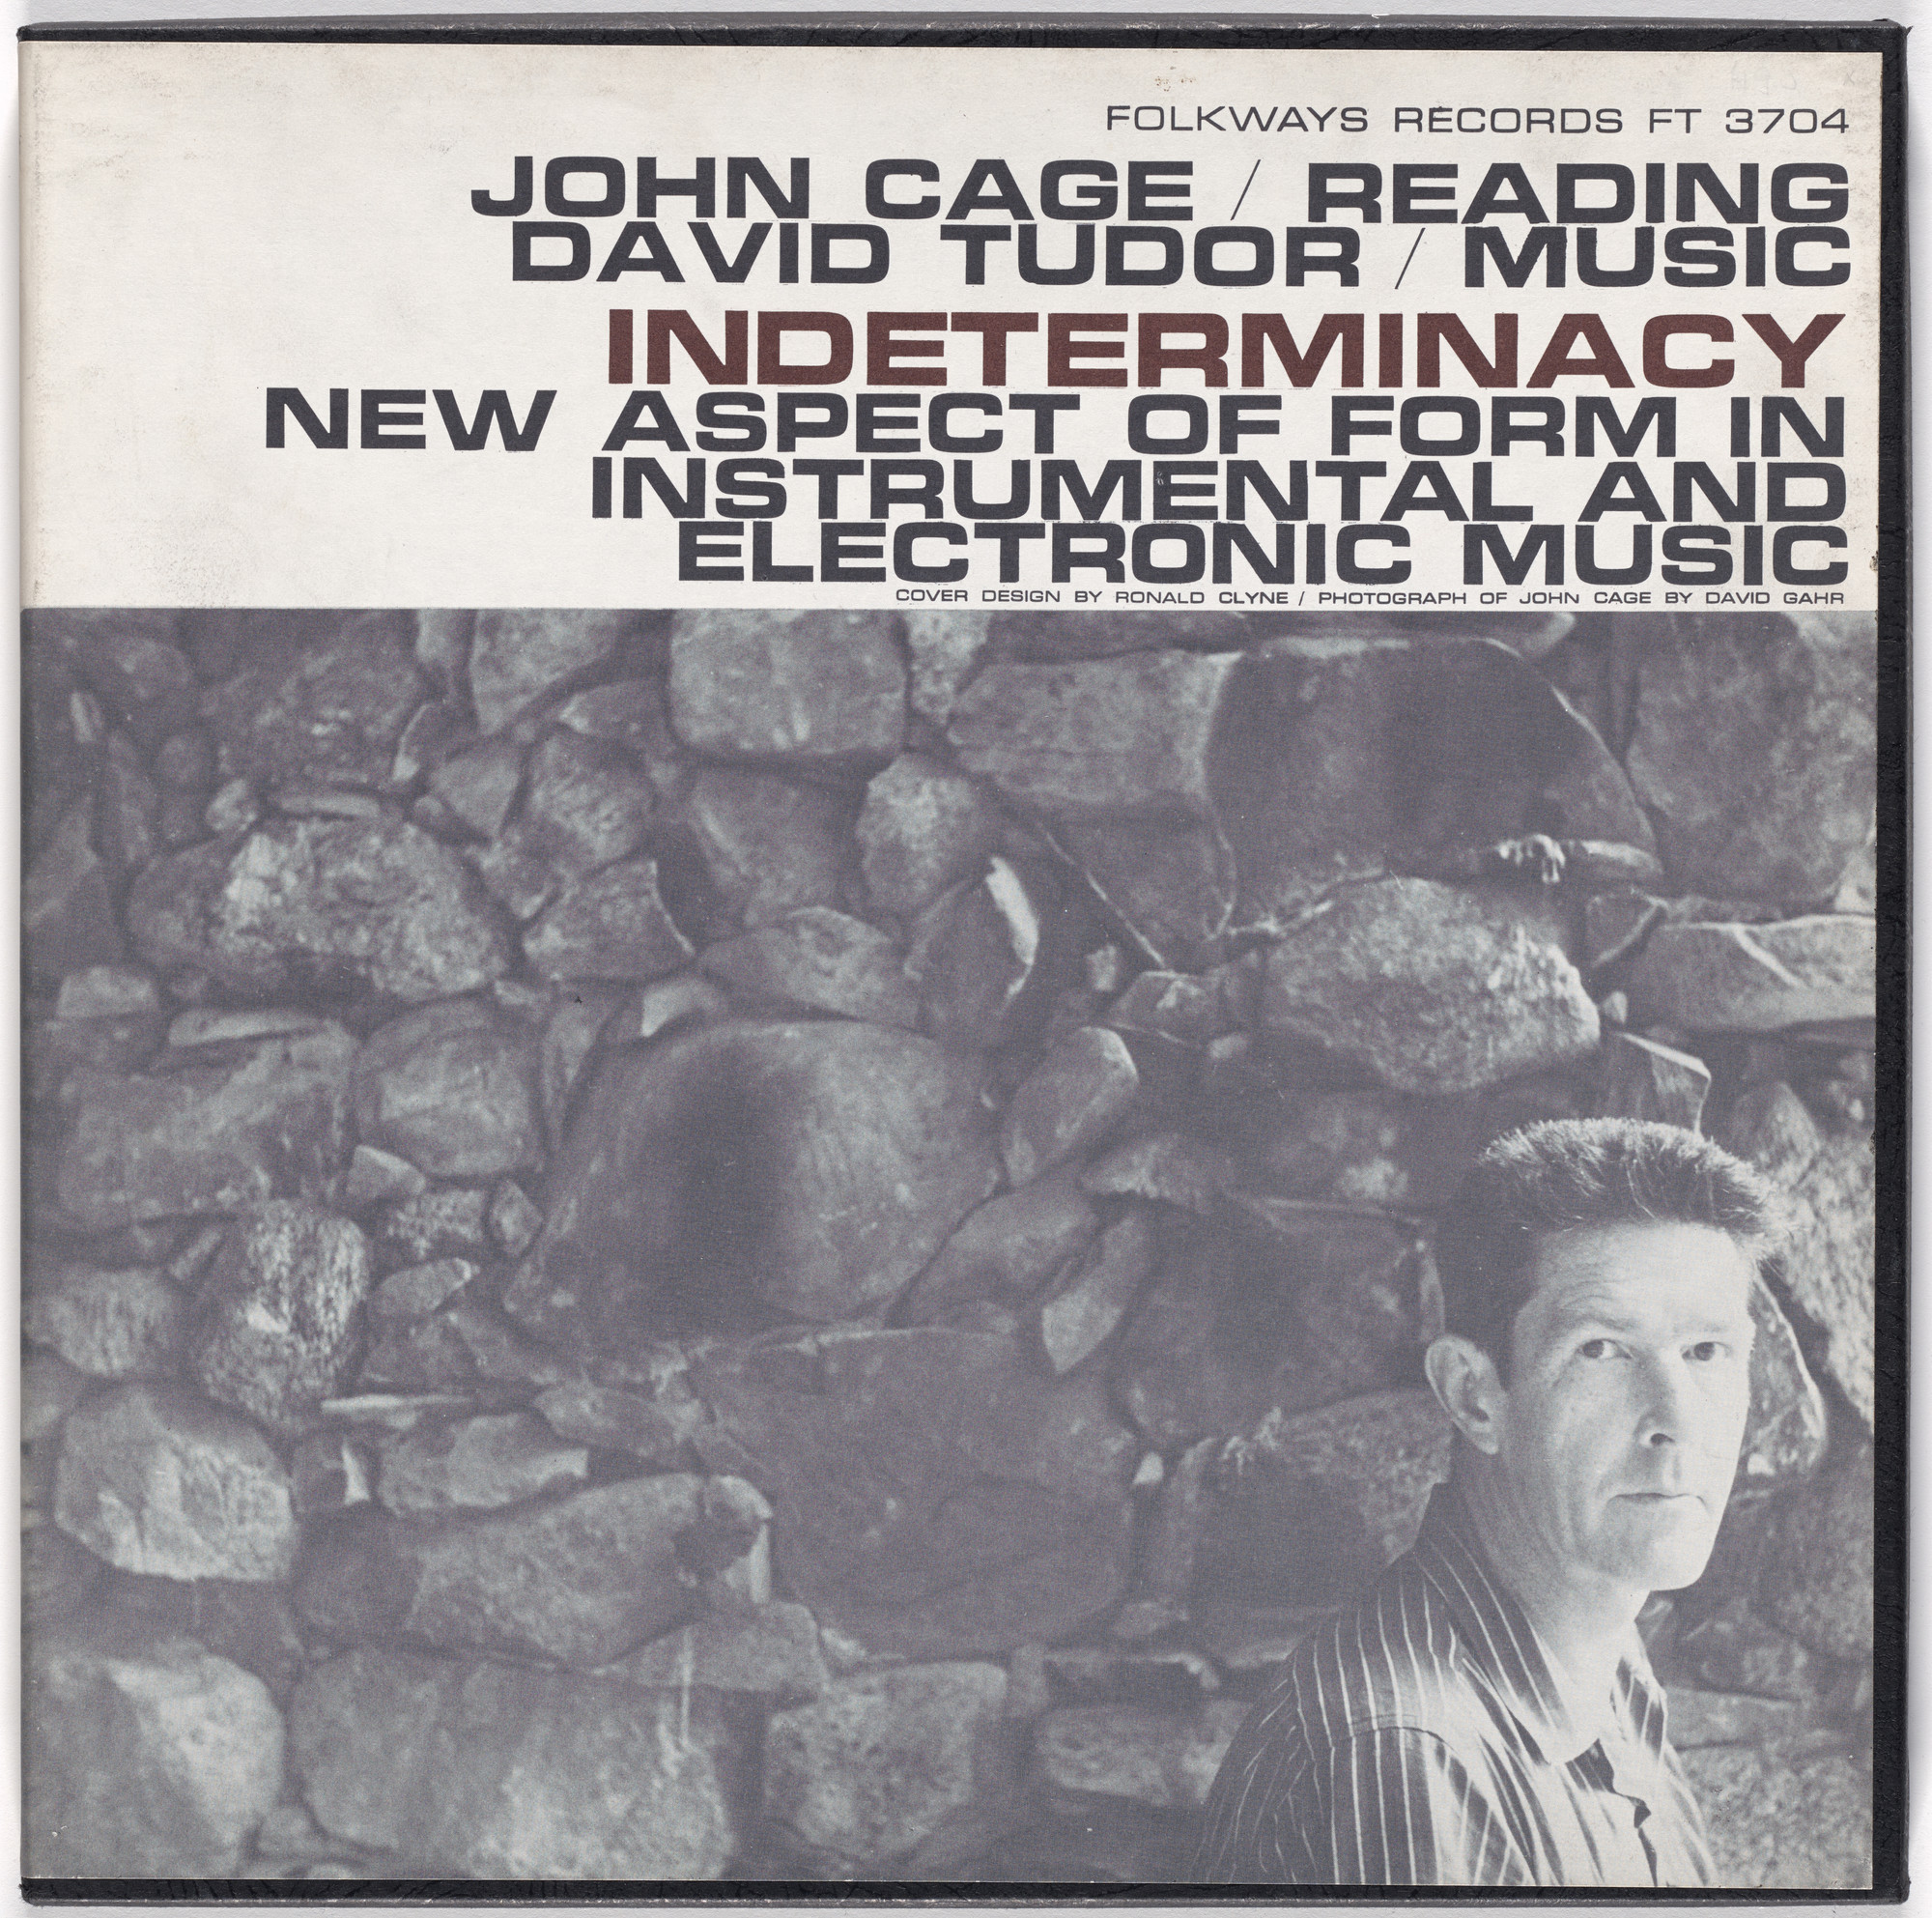 John Cage, David Tudor. Indeterminacy: New Aspect of Form in Instrumental and Electronic Music. 1959